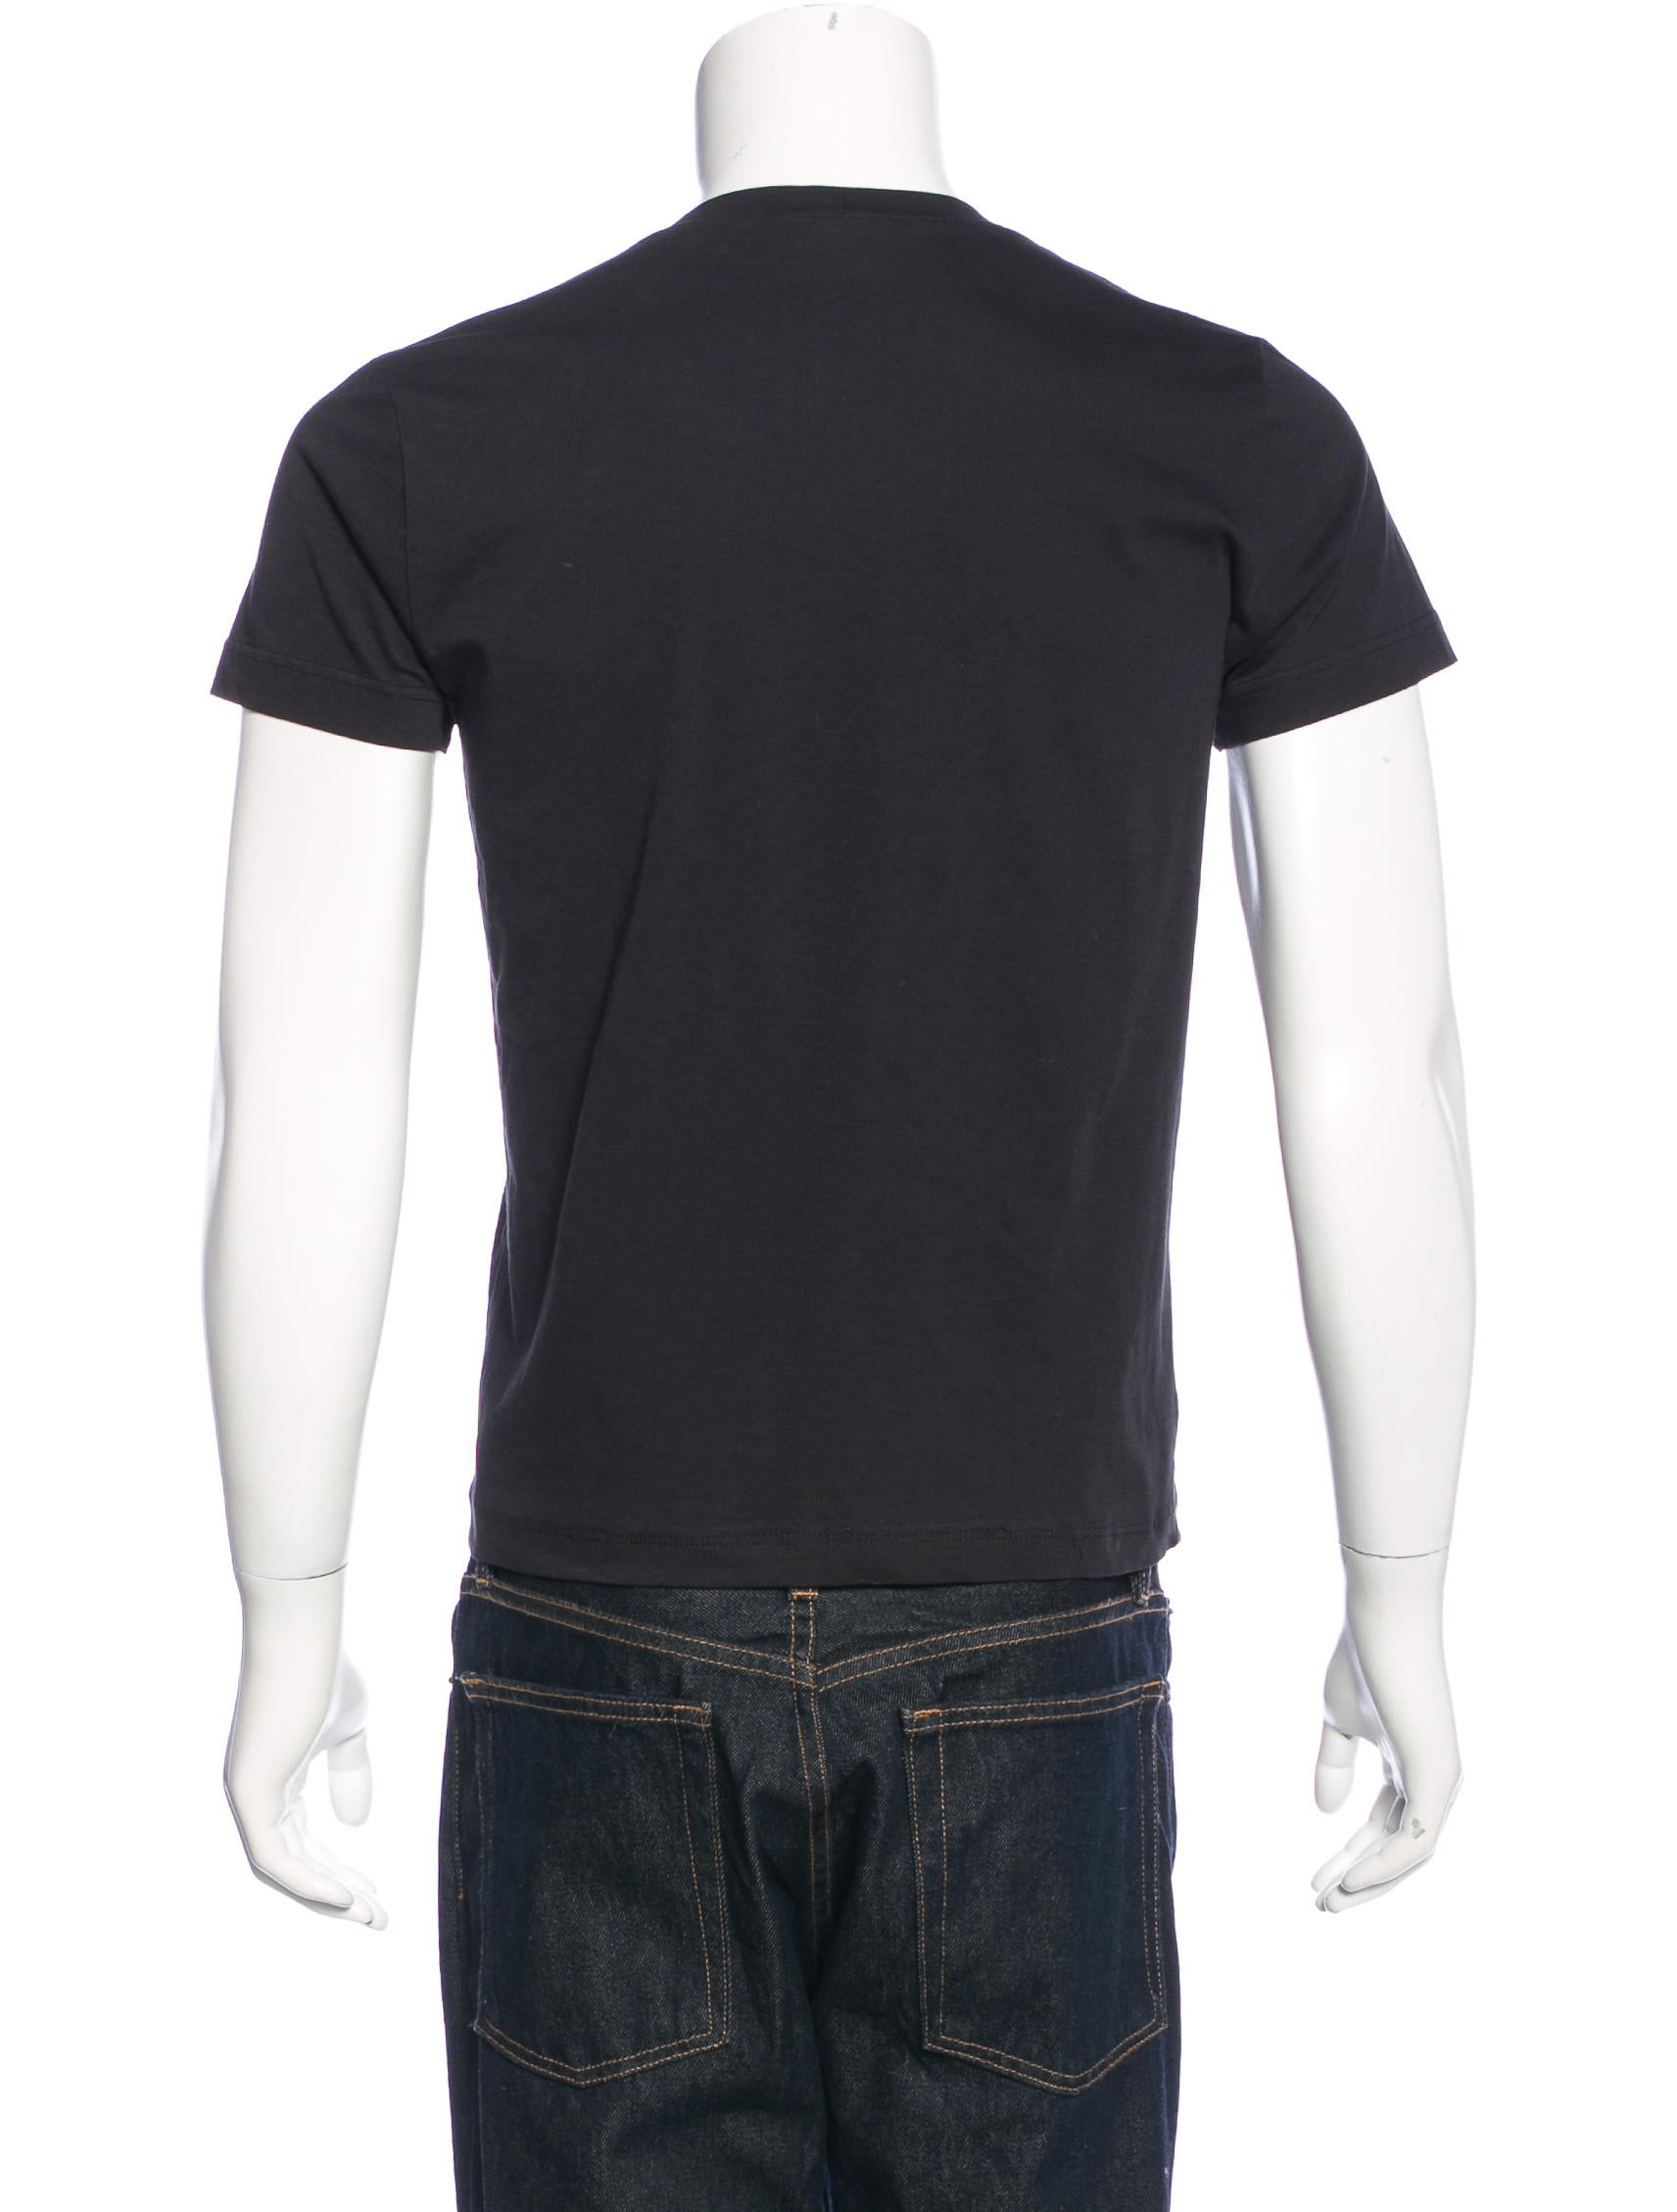 Bottega veneta mesh trimmed v neck t shirt clothing for Bottega veneta t shirt